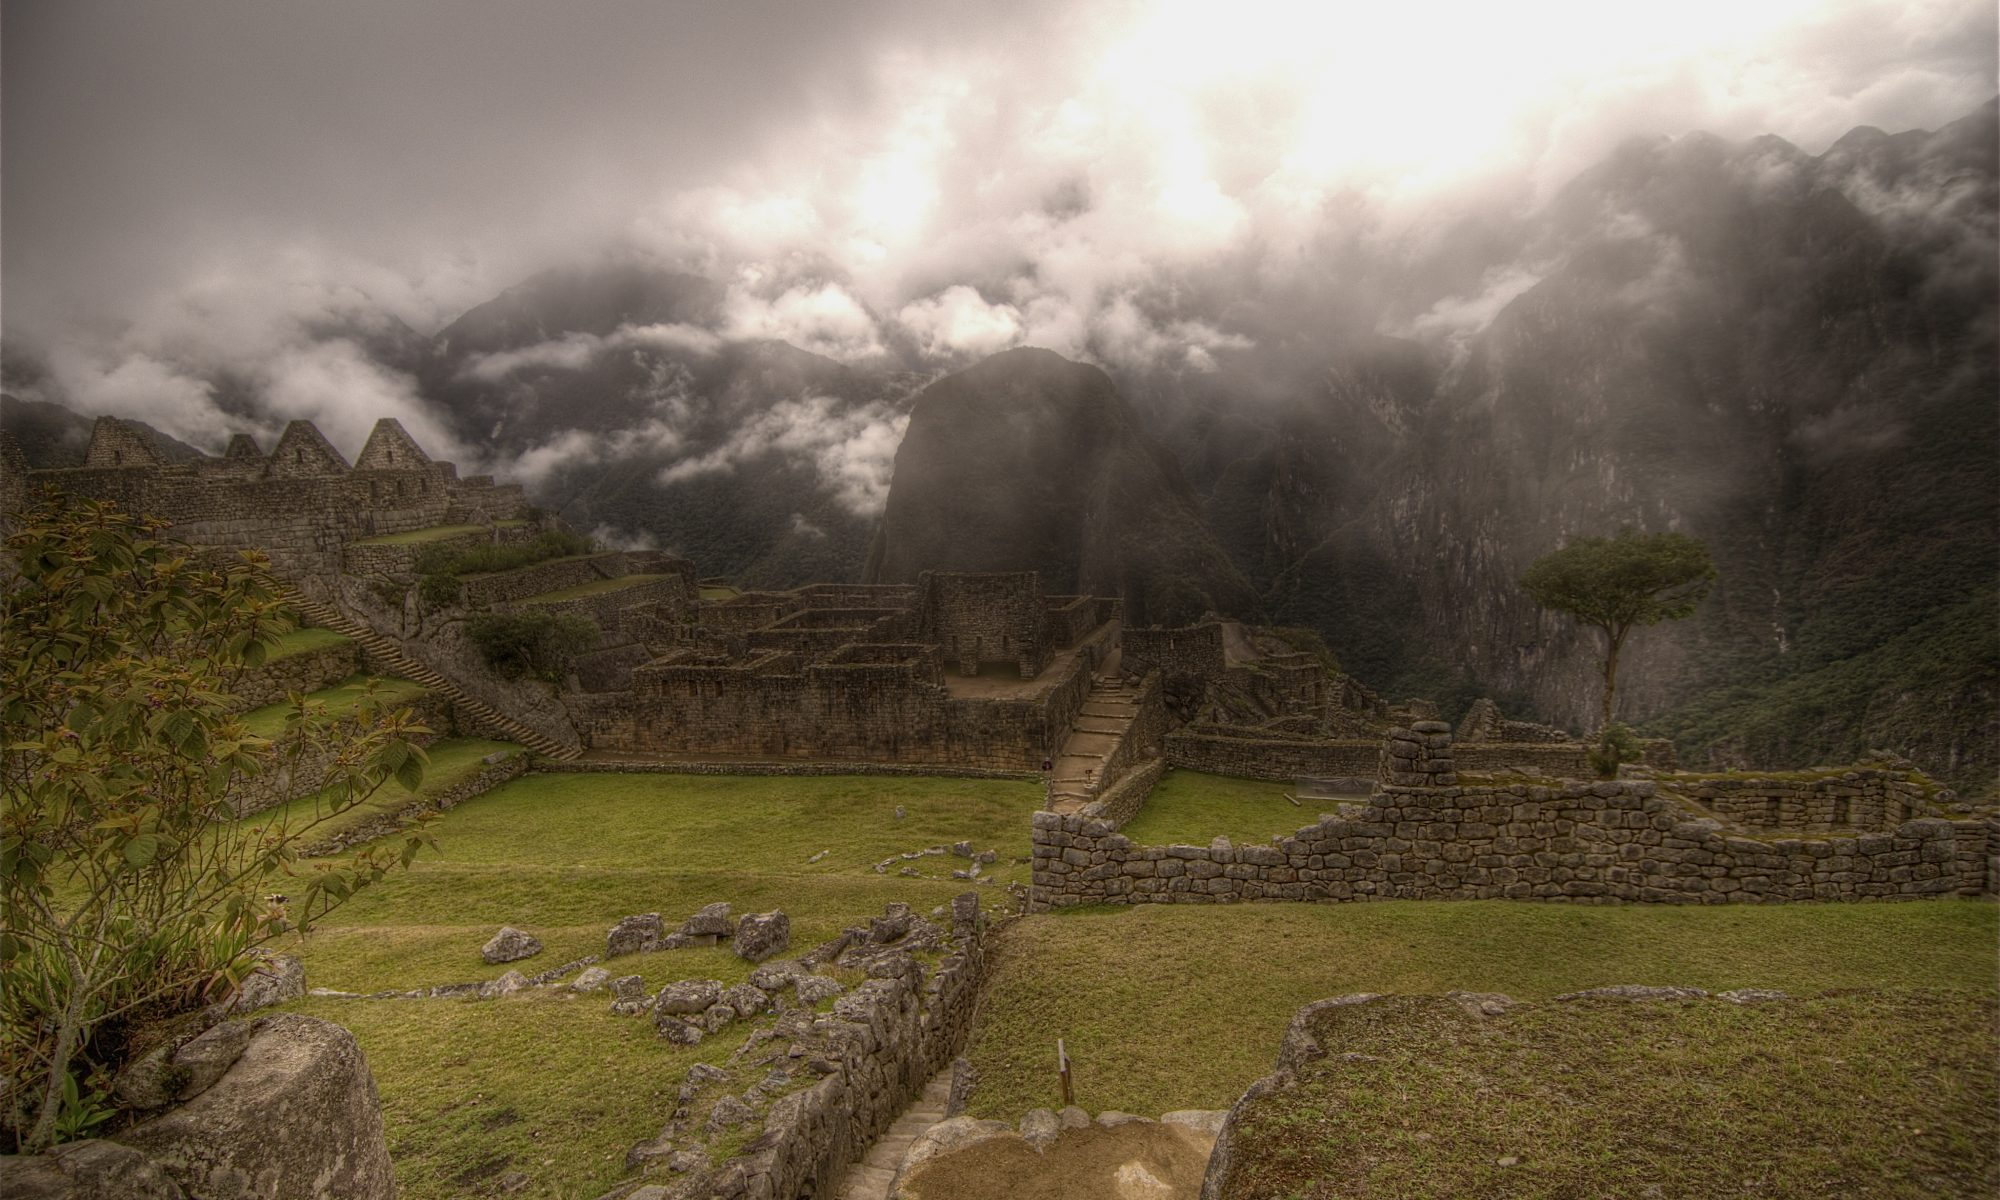 darkness-By Ville Miettinen from Helsinki, Finland (Machu Picchu at dawn) [CC BY 2.0 (https://creativecommons.org/licenses/by/2.0)], via Wikimedia Commons